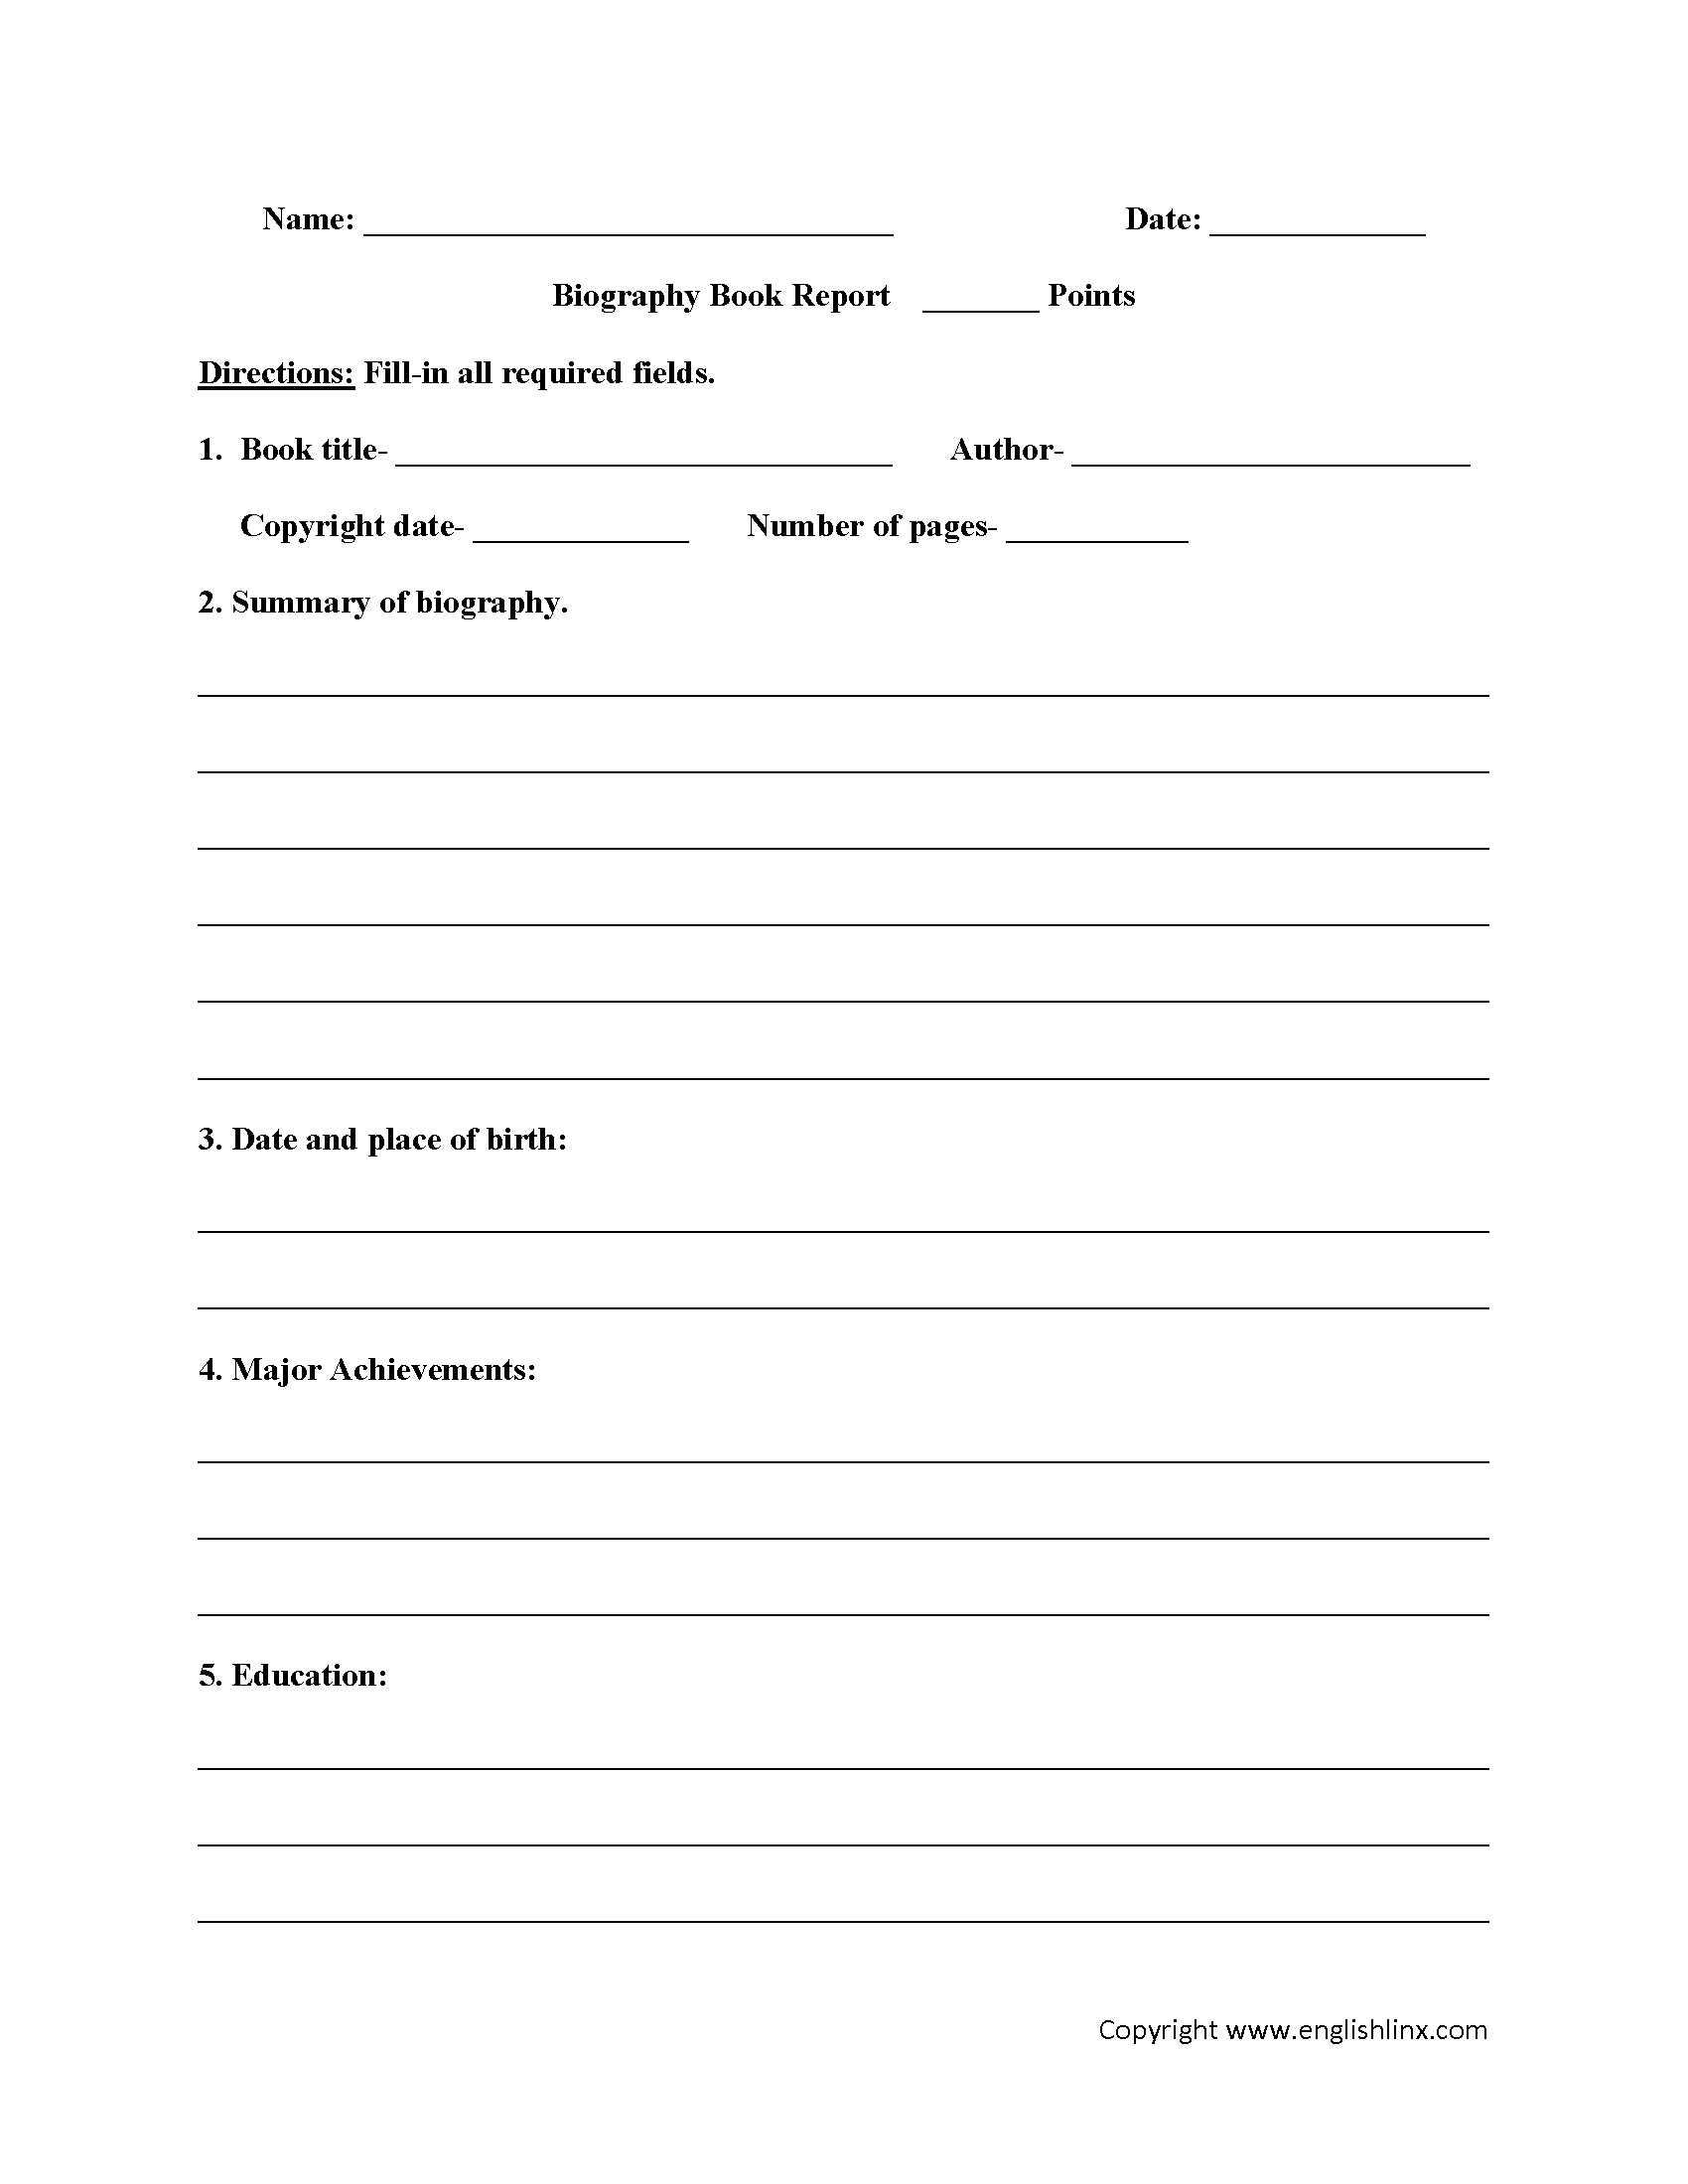 Biography Book Report Worksheets | Eng-writing | Pinterest ...